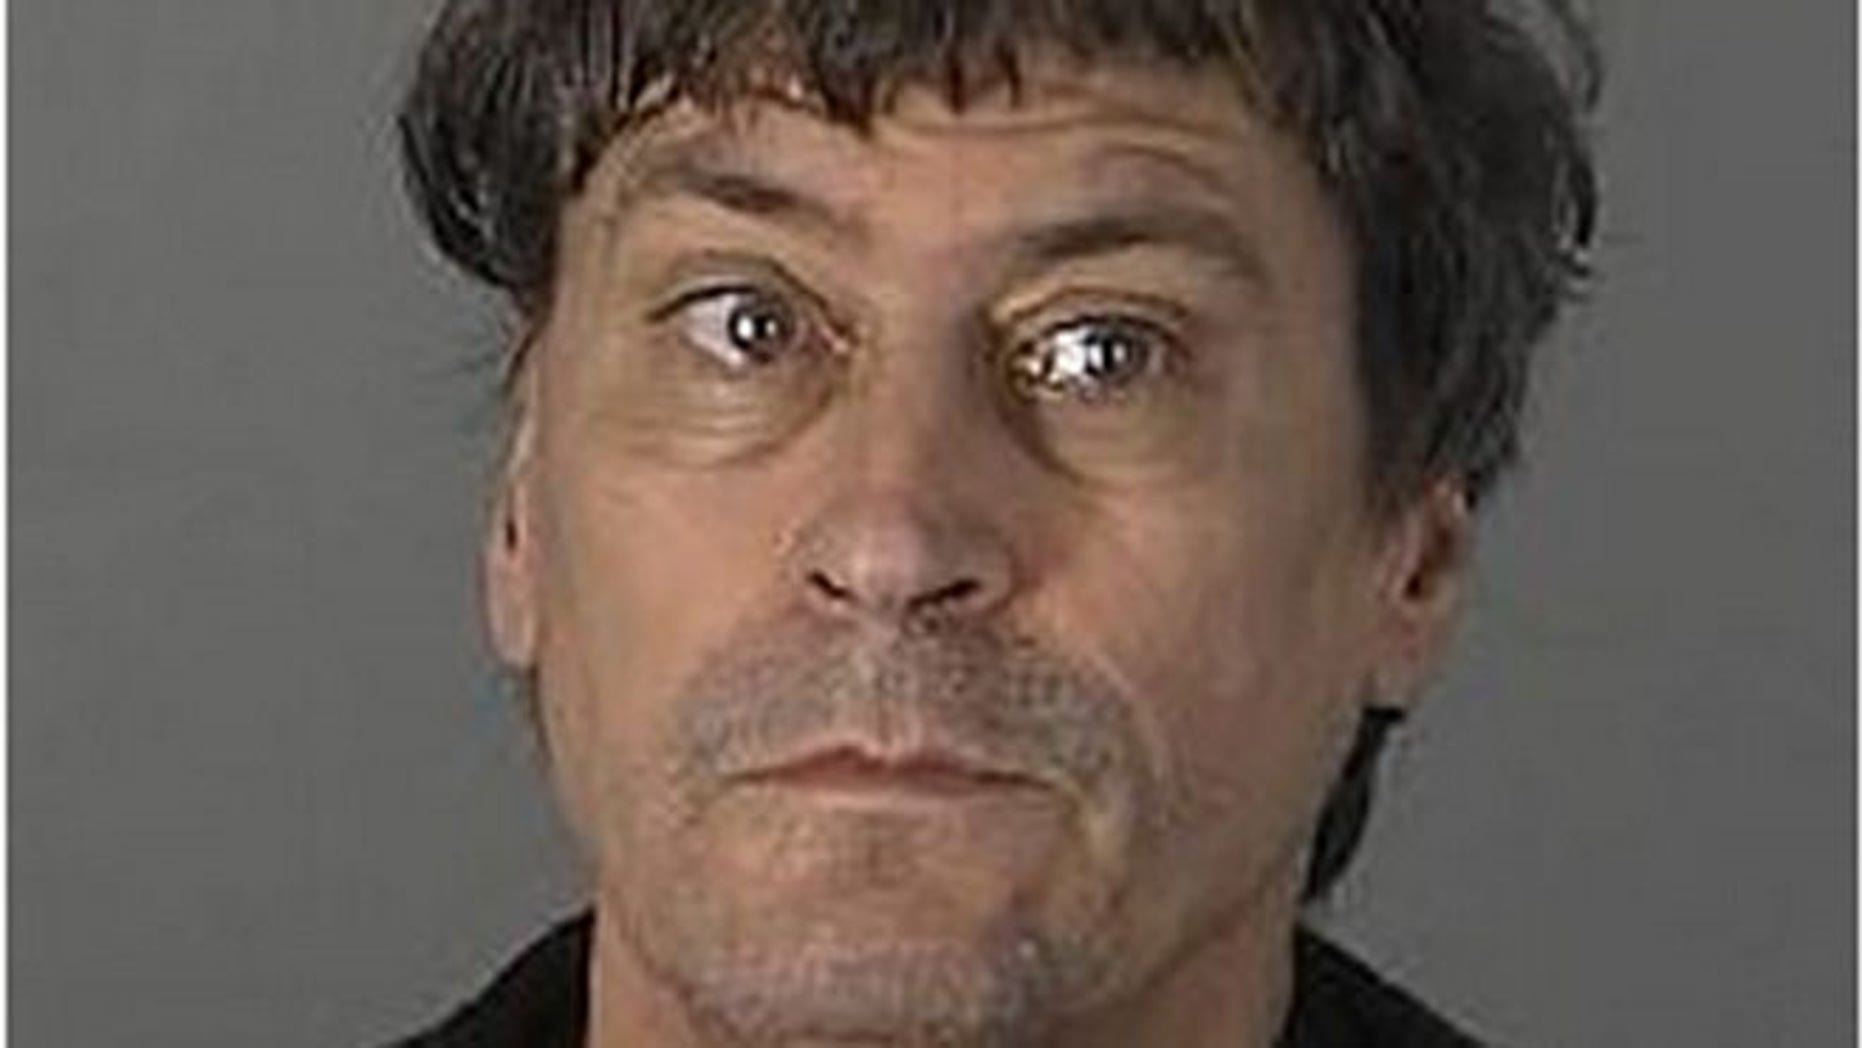 David Edward Benes was arrest on charges that include domestic battery on a person older than 65, tampering with a witness and false imprisonment.